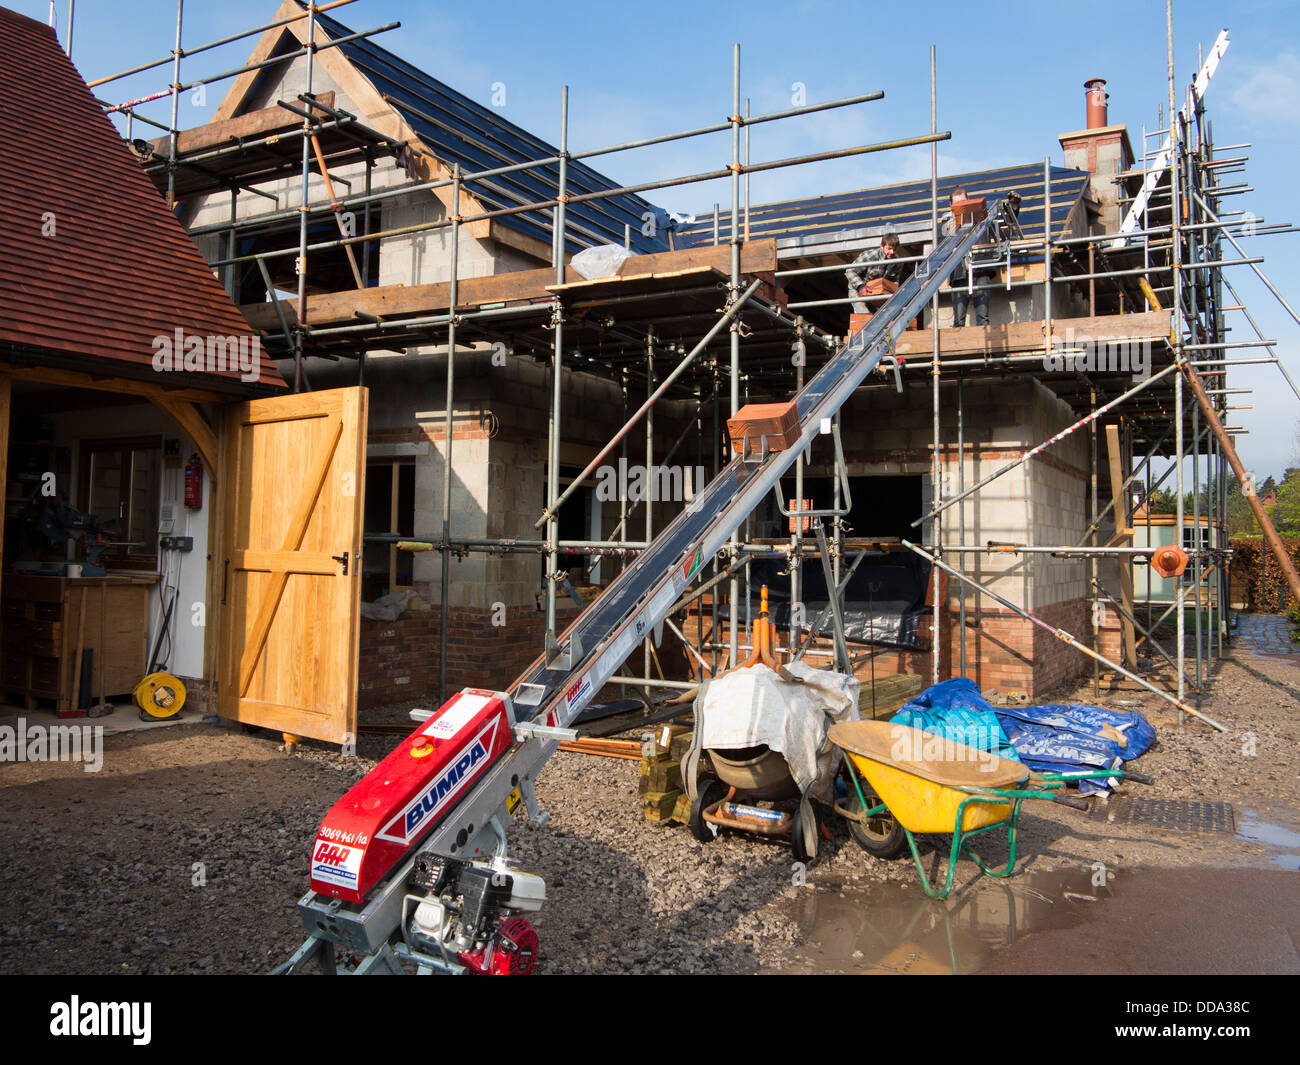 self building house, constructing roof, using bumpa lift to raise